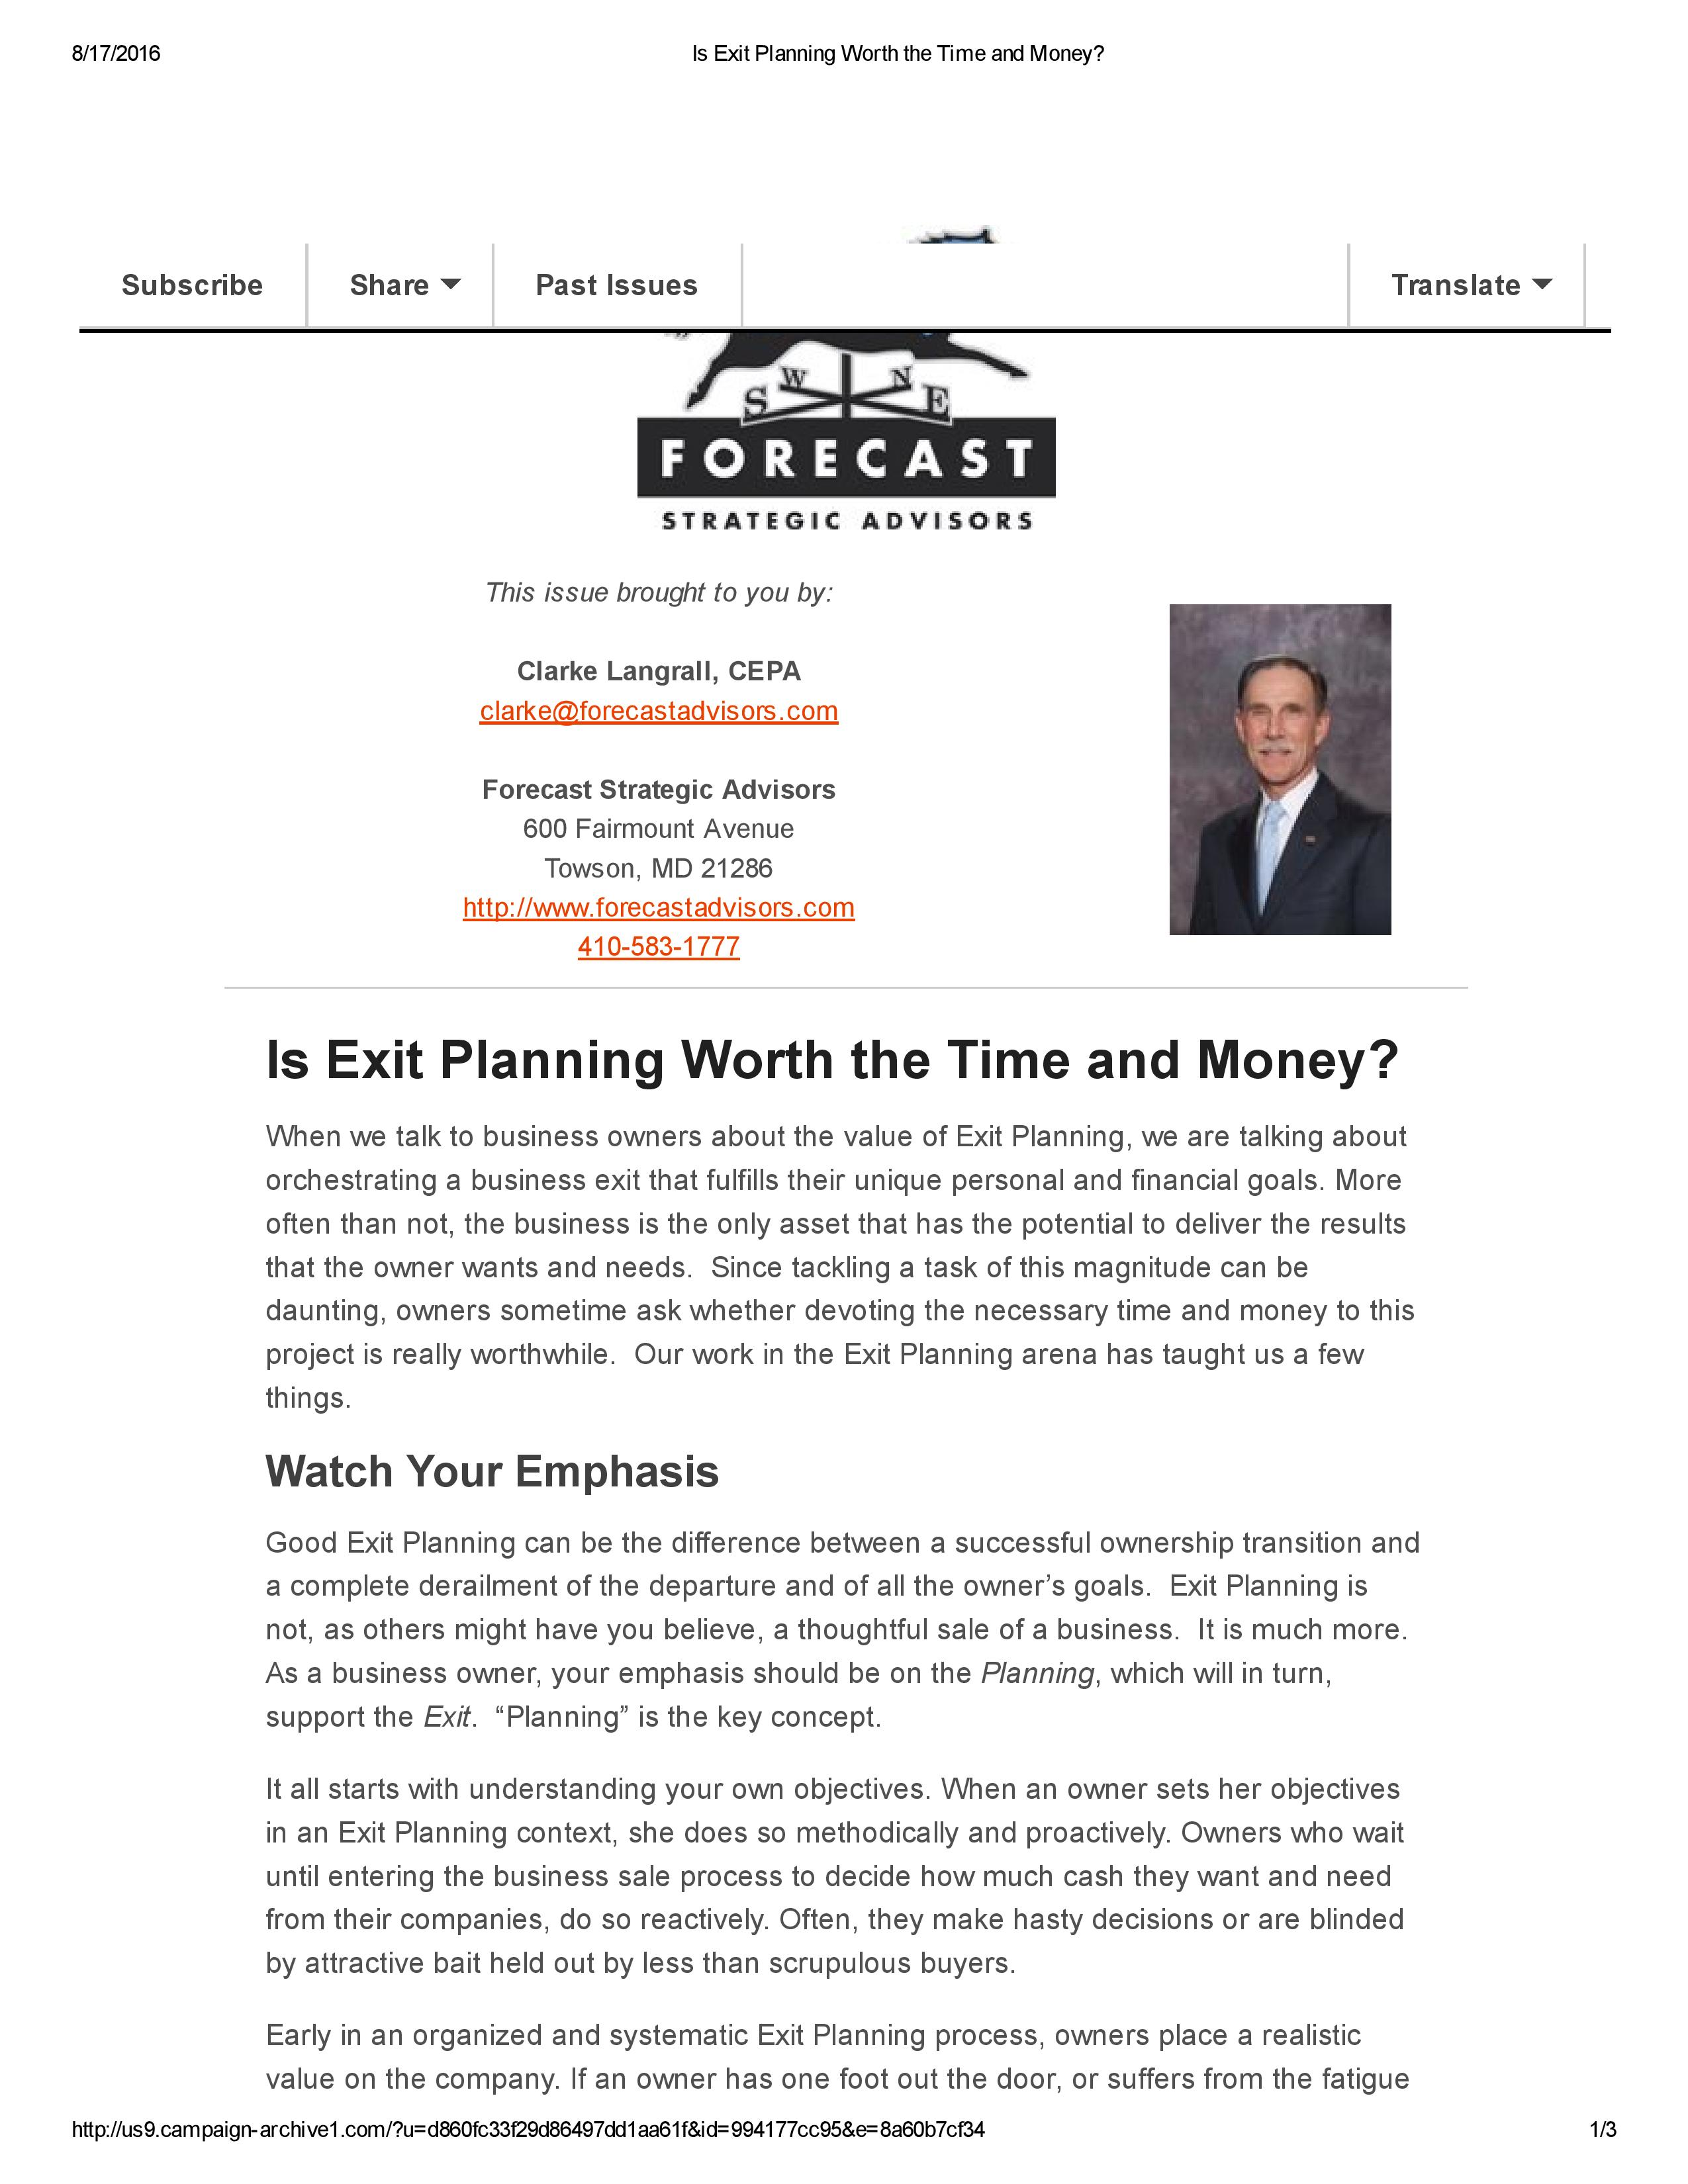 Is Exit Planning Worth the Time and Money_-page-001